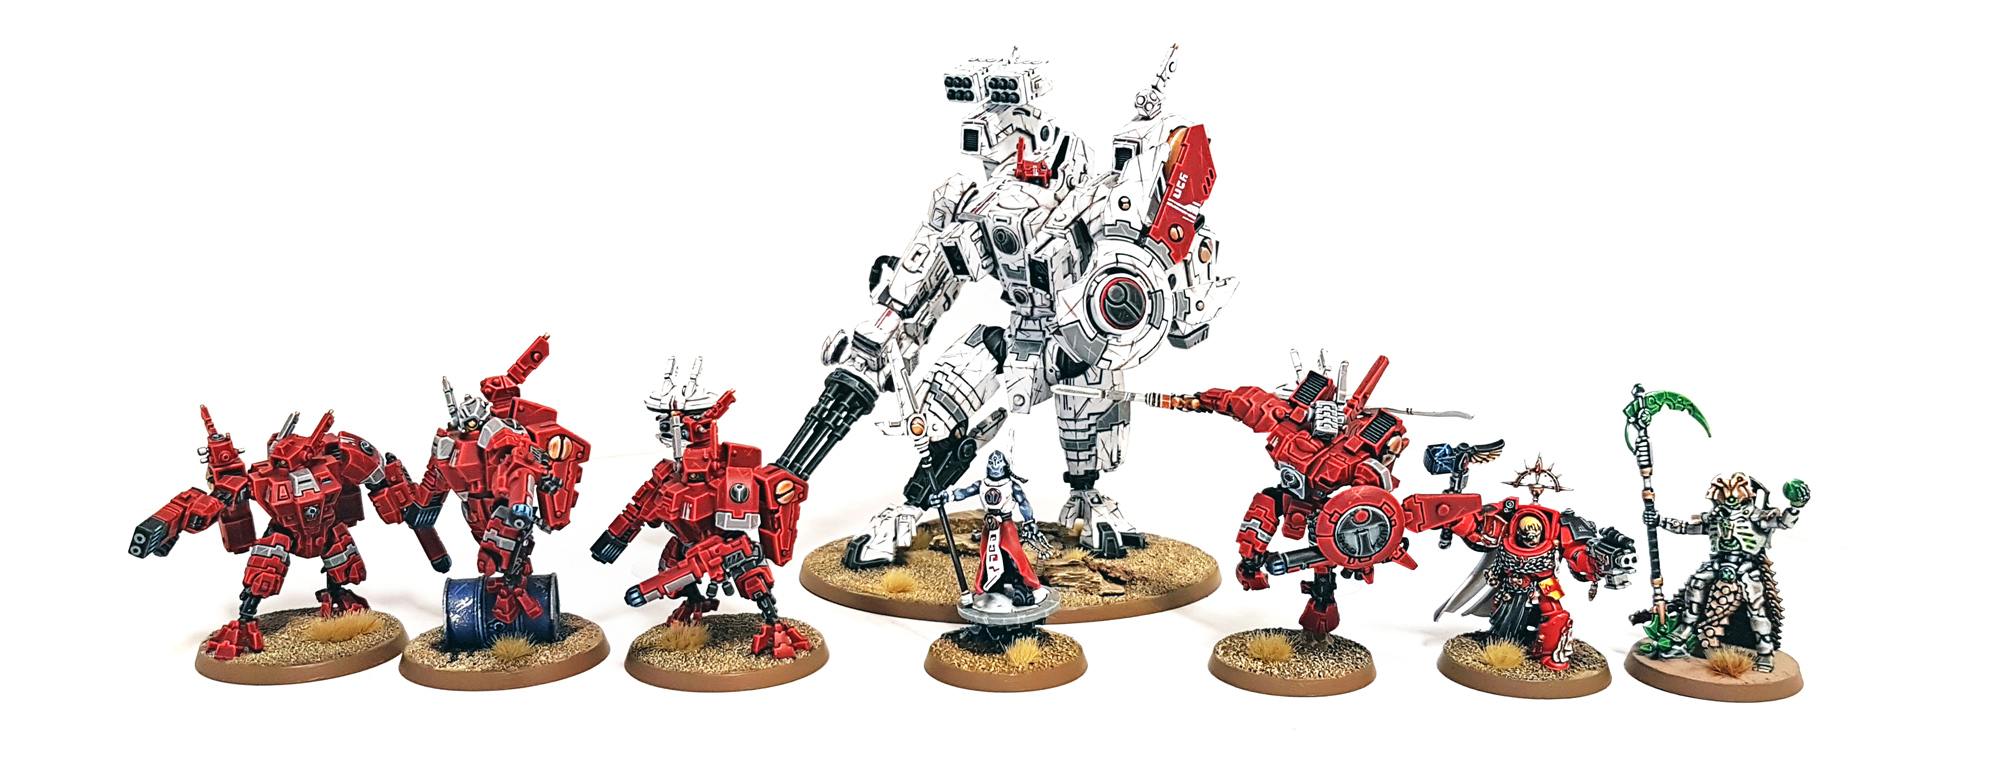 Deathhammer40k Warhammer 40,000 Commission and Testimonials Tau Empire Project